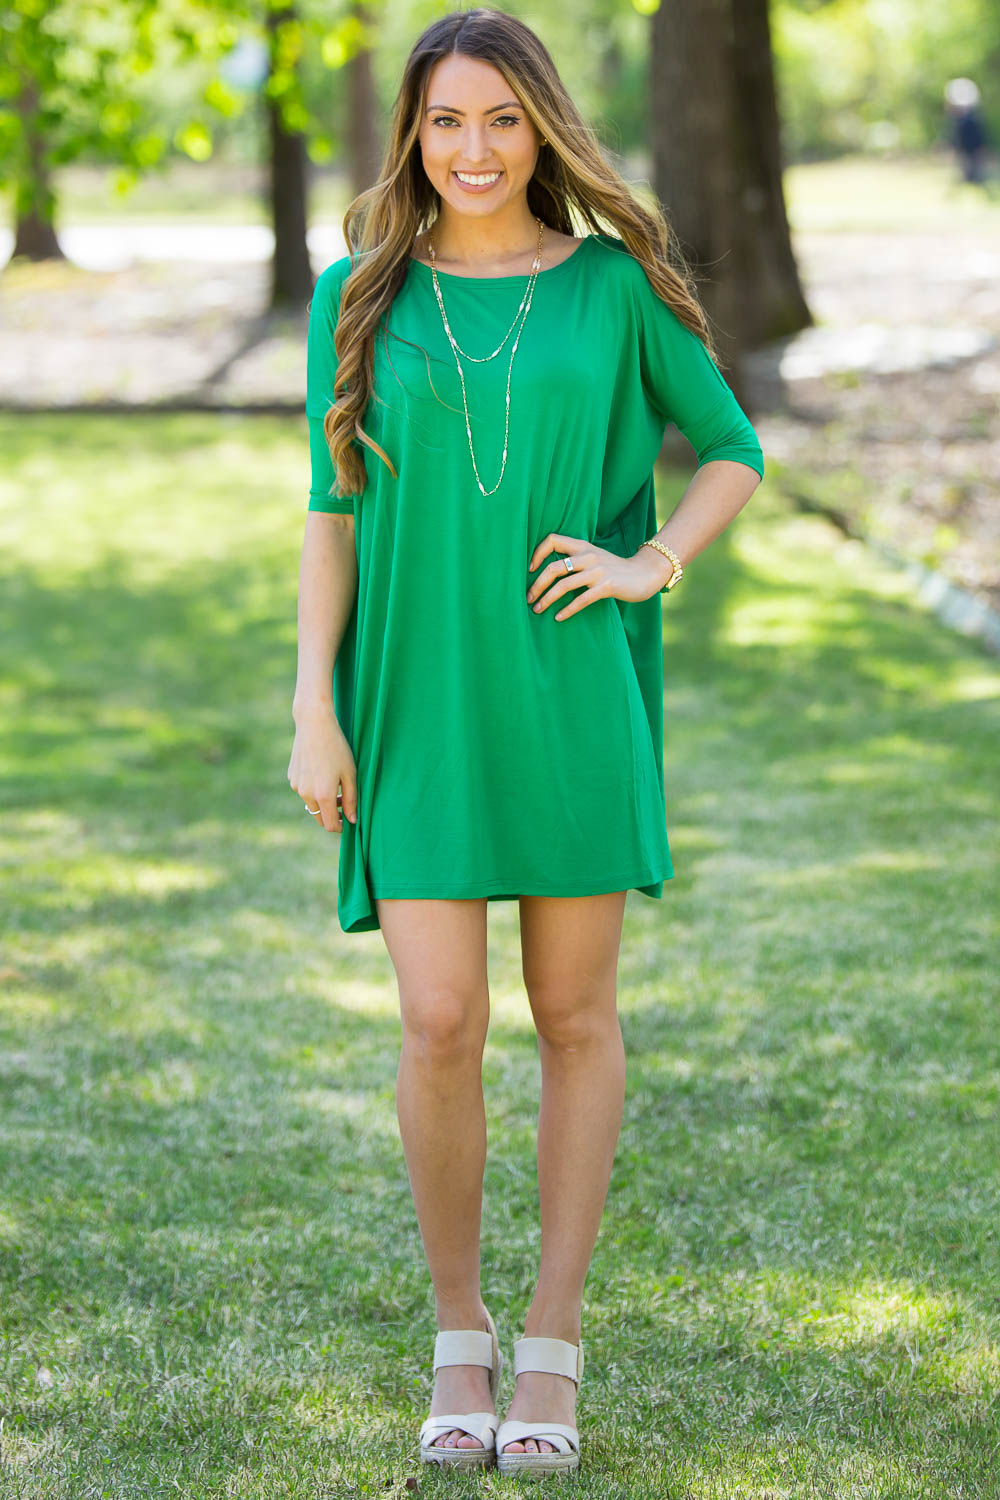 Half Sleeve Piko Tunic - Kelly Green - Piko Clothing